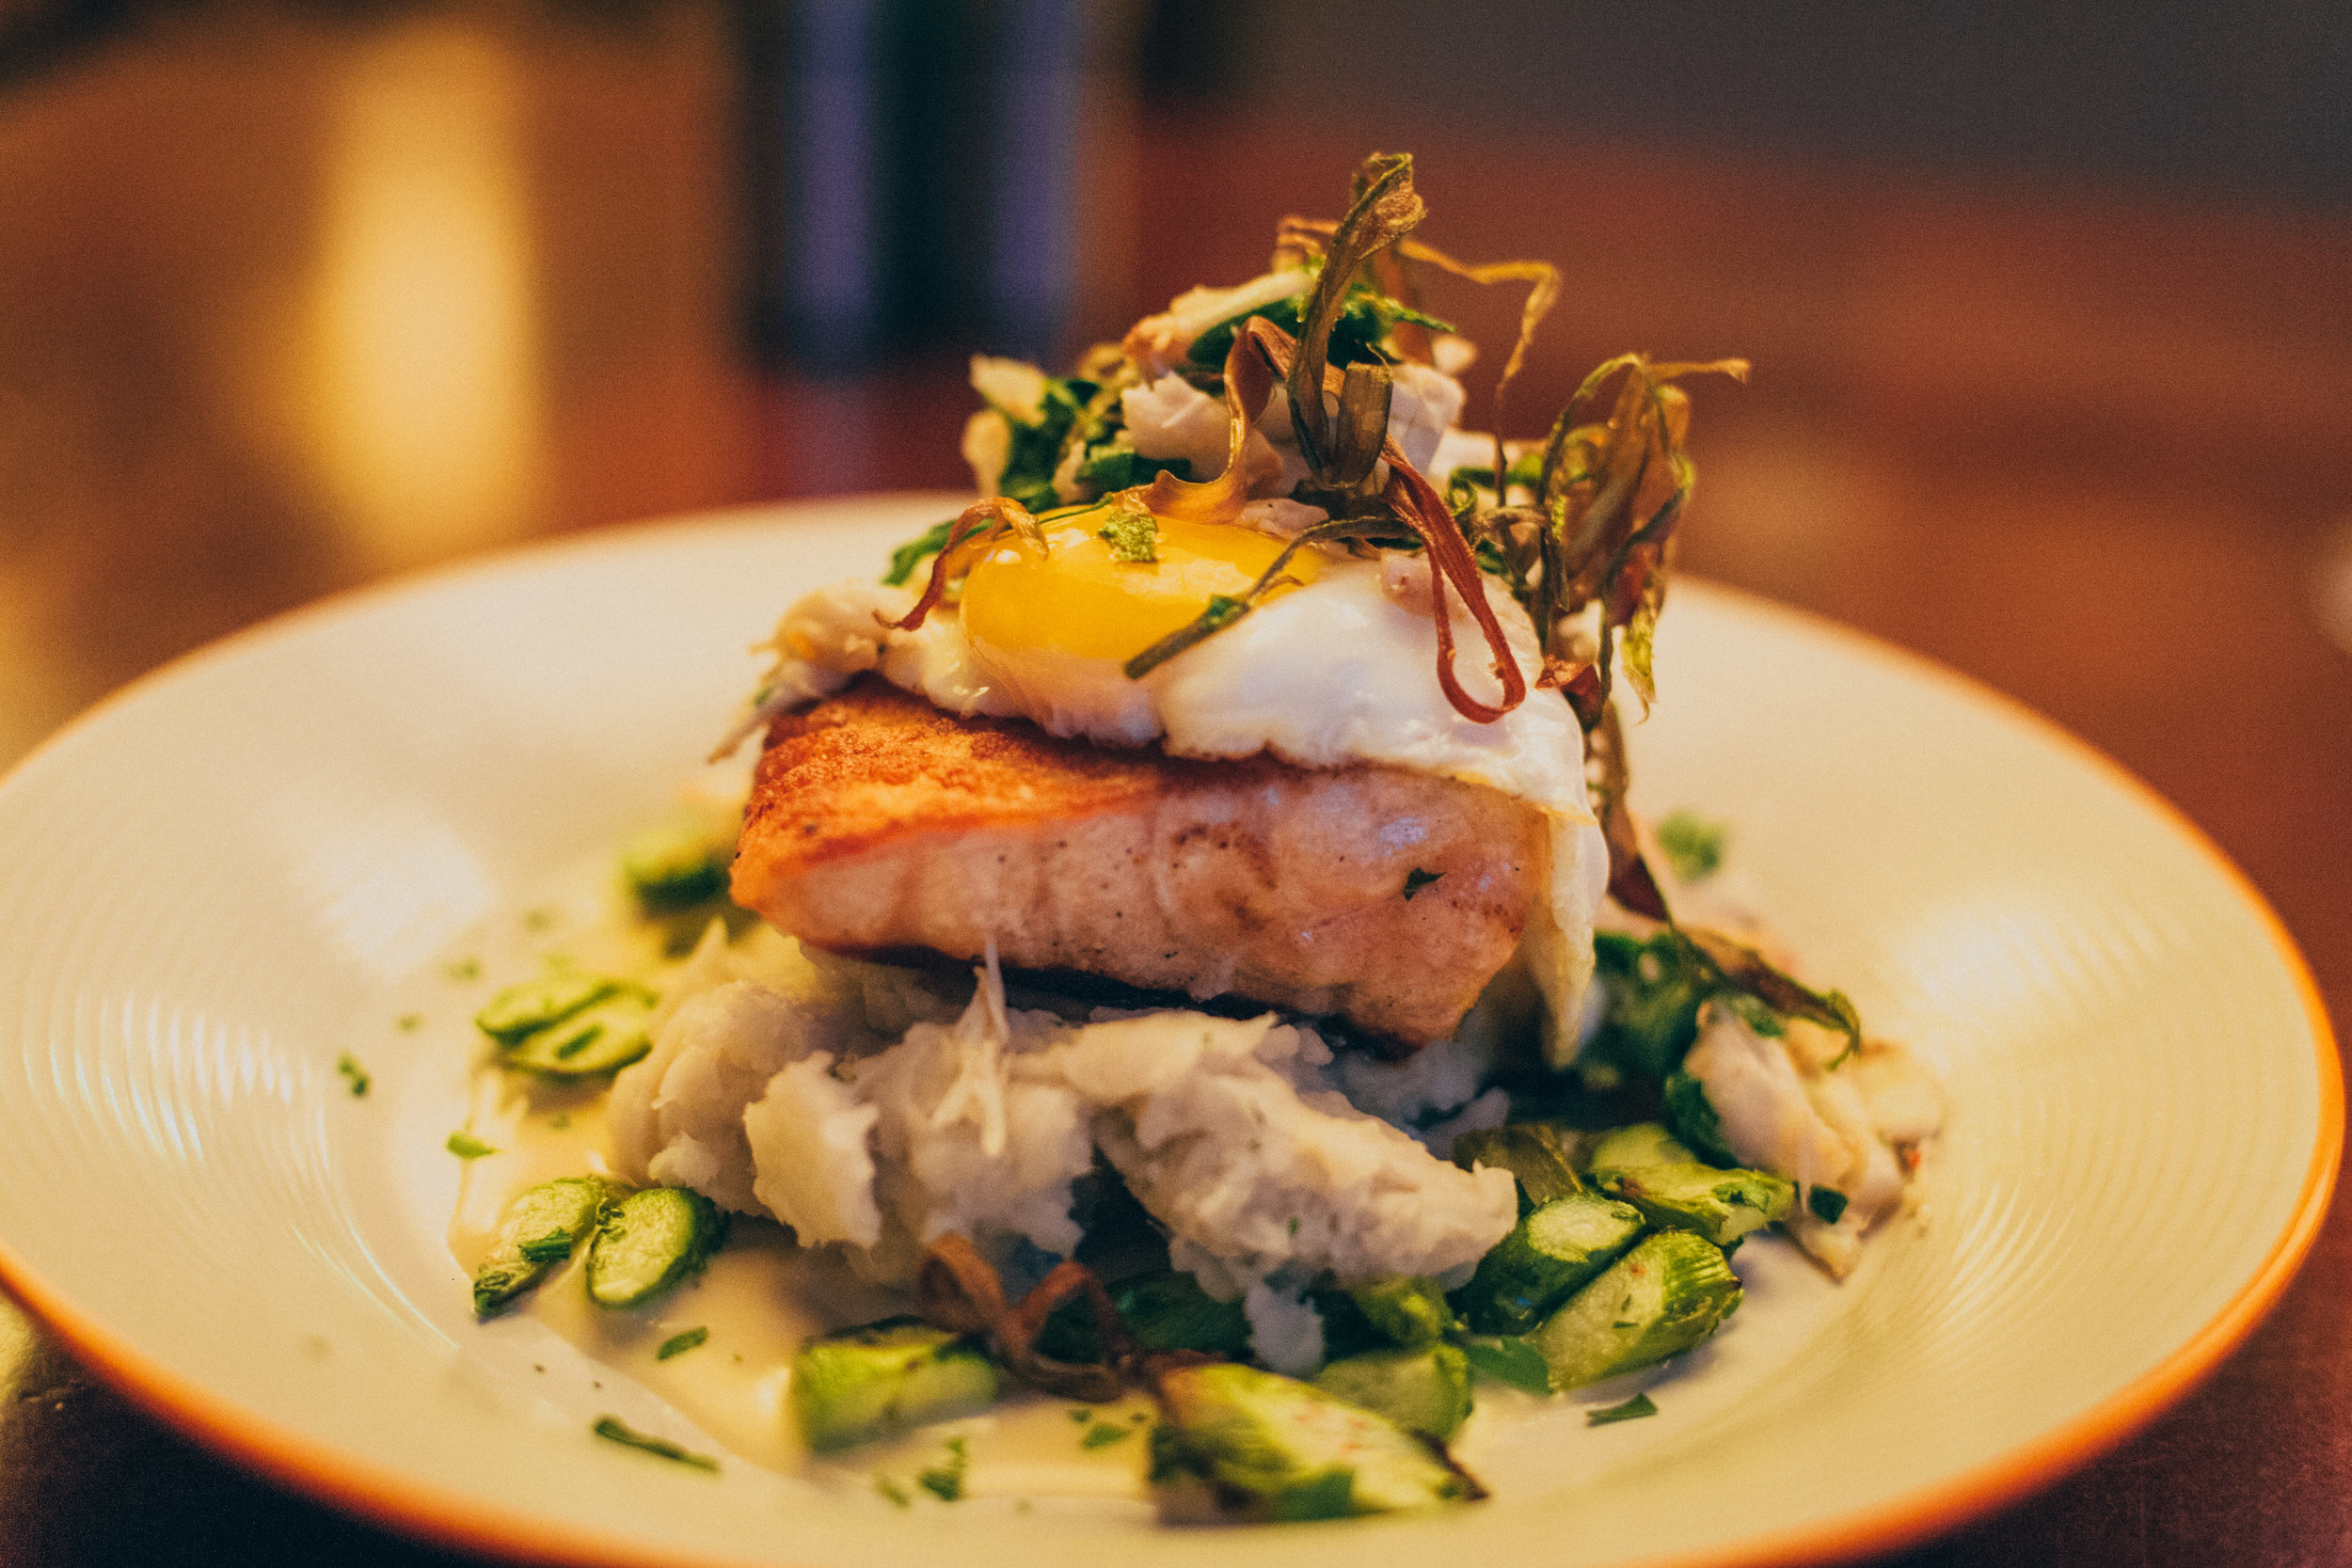 """Scottish Loch Duarte Salmon """"Oscar"""": North Atlantic salmon topped with a fried egg, blue crab salad and wilted arugula, over boniato mash, asparagus and blood orange butter"""